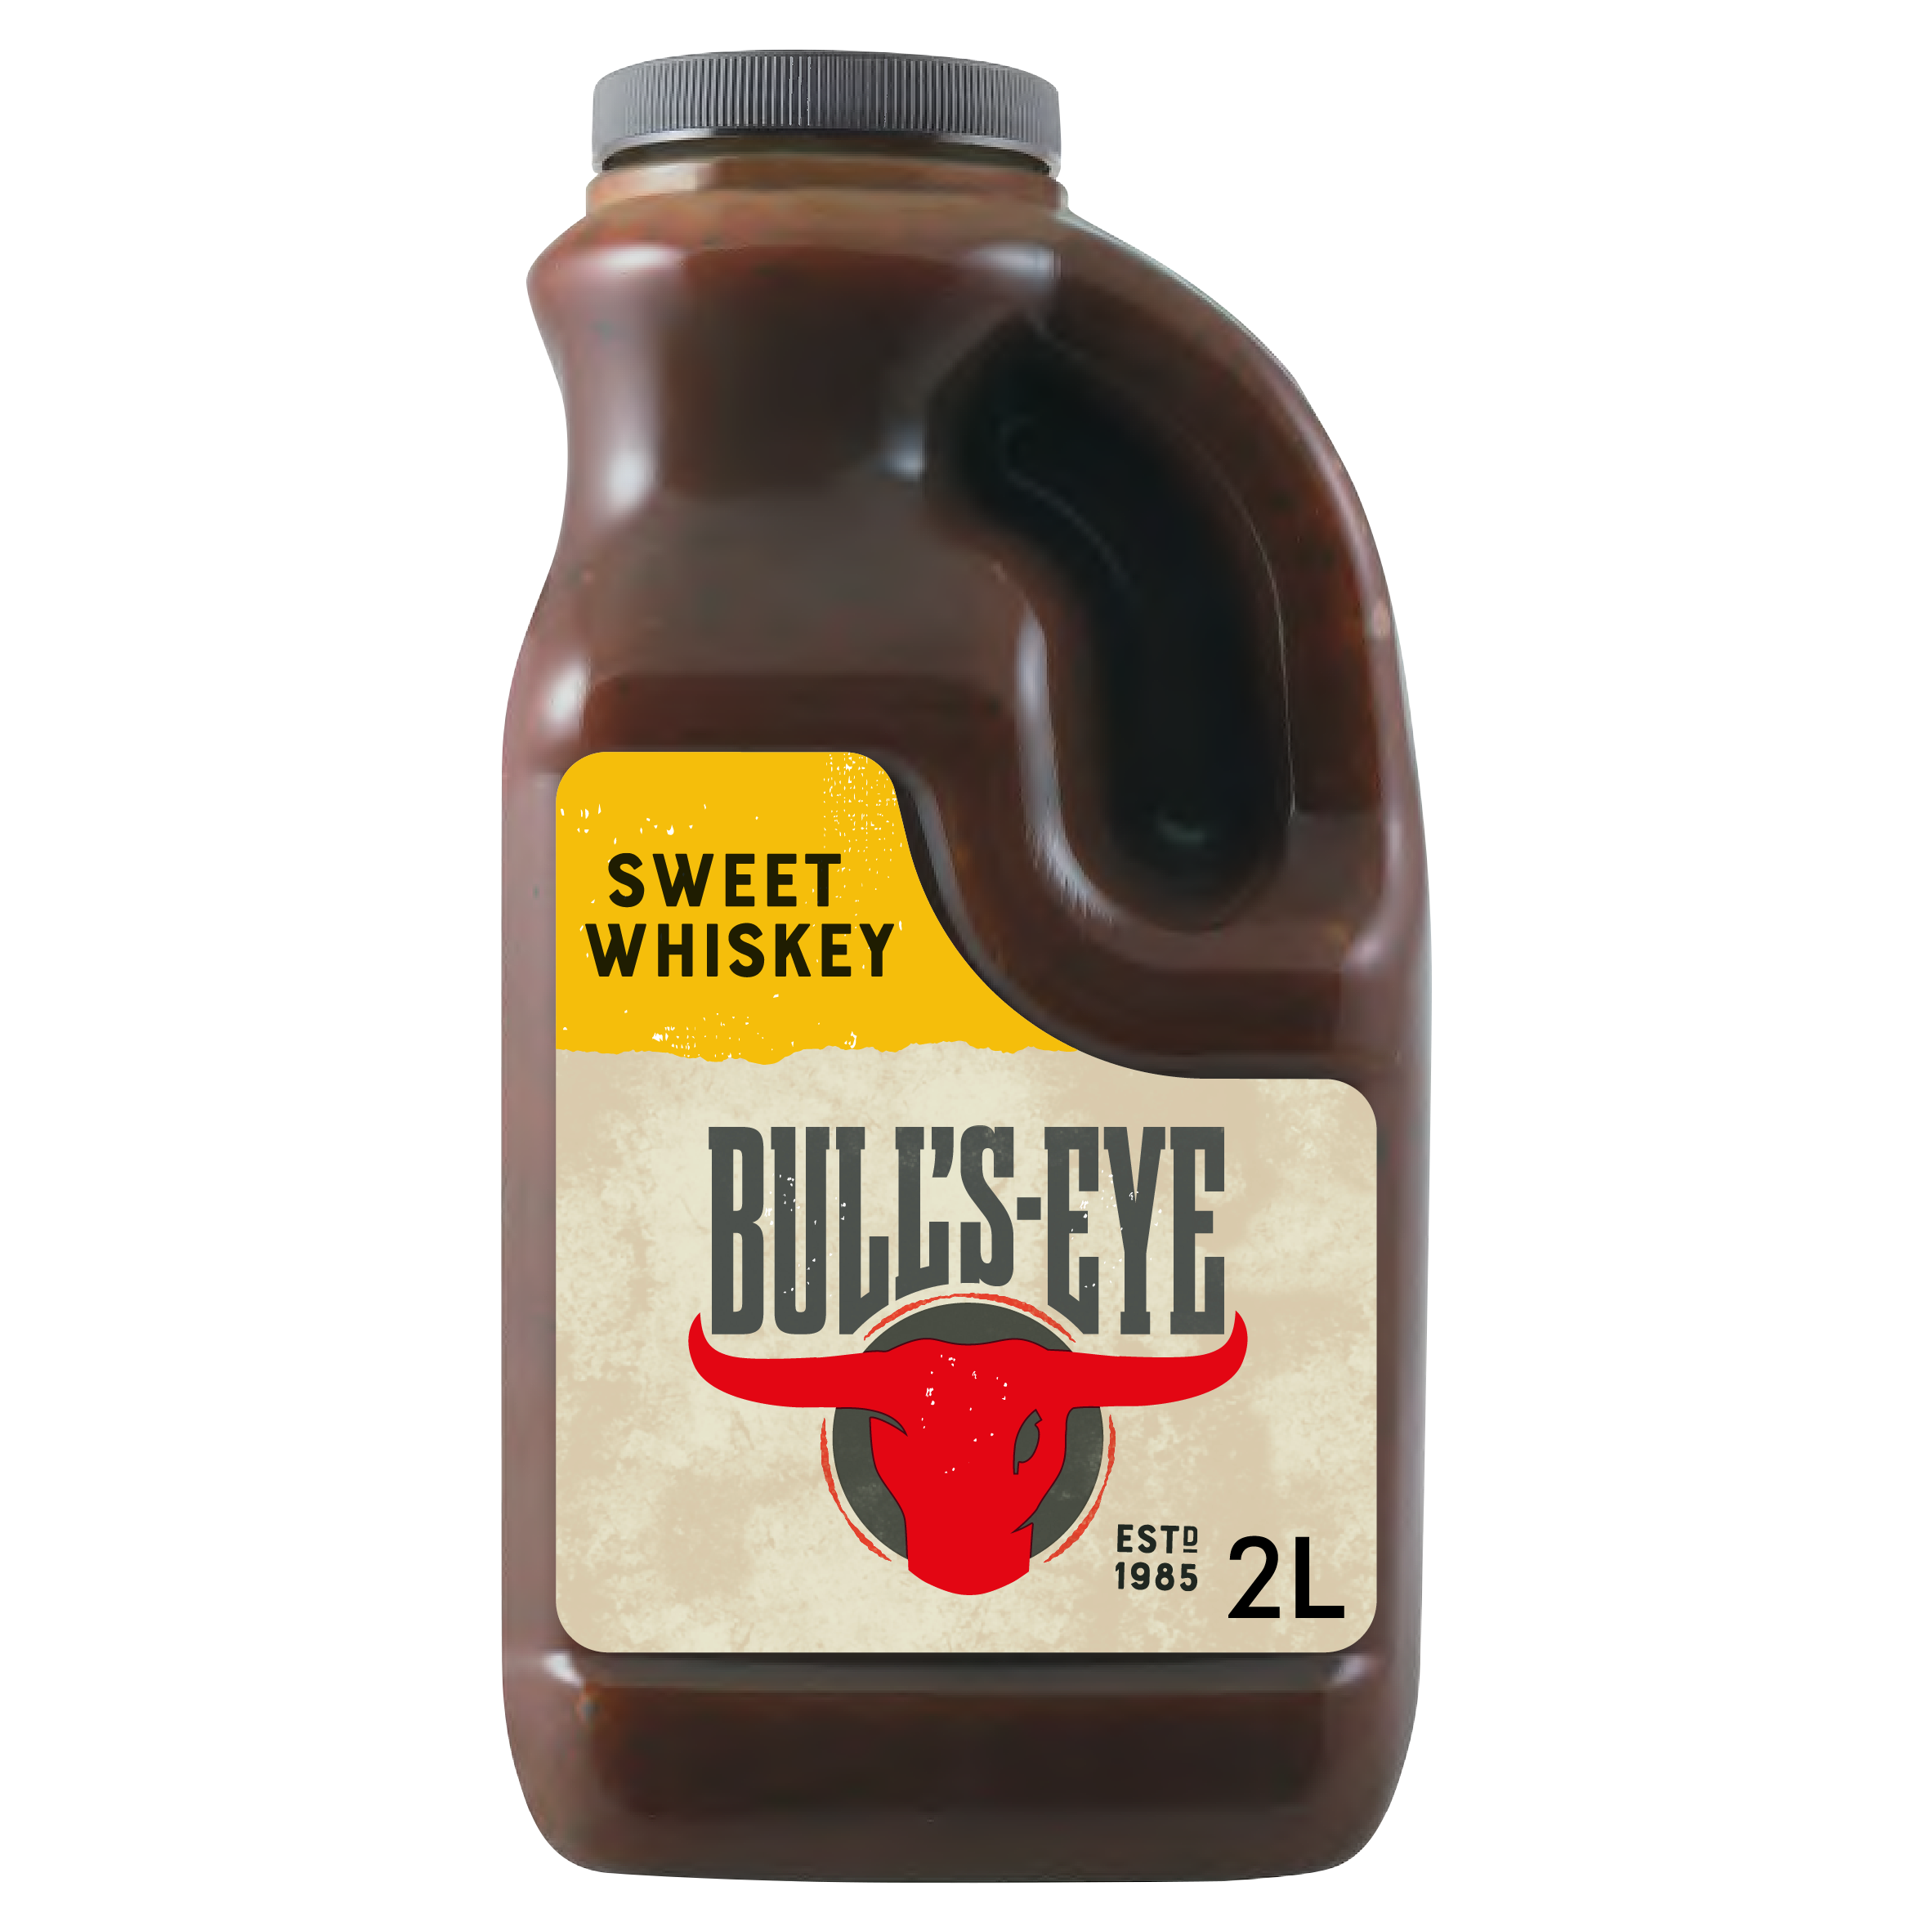 Bull's Eye sweet whisky 2L image